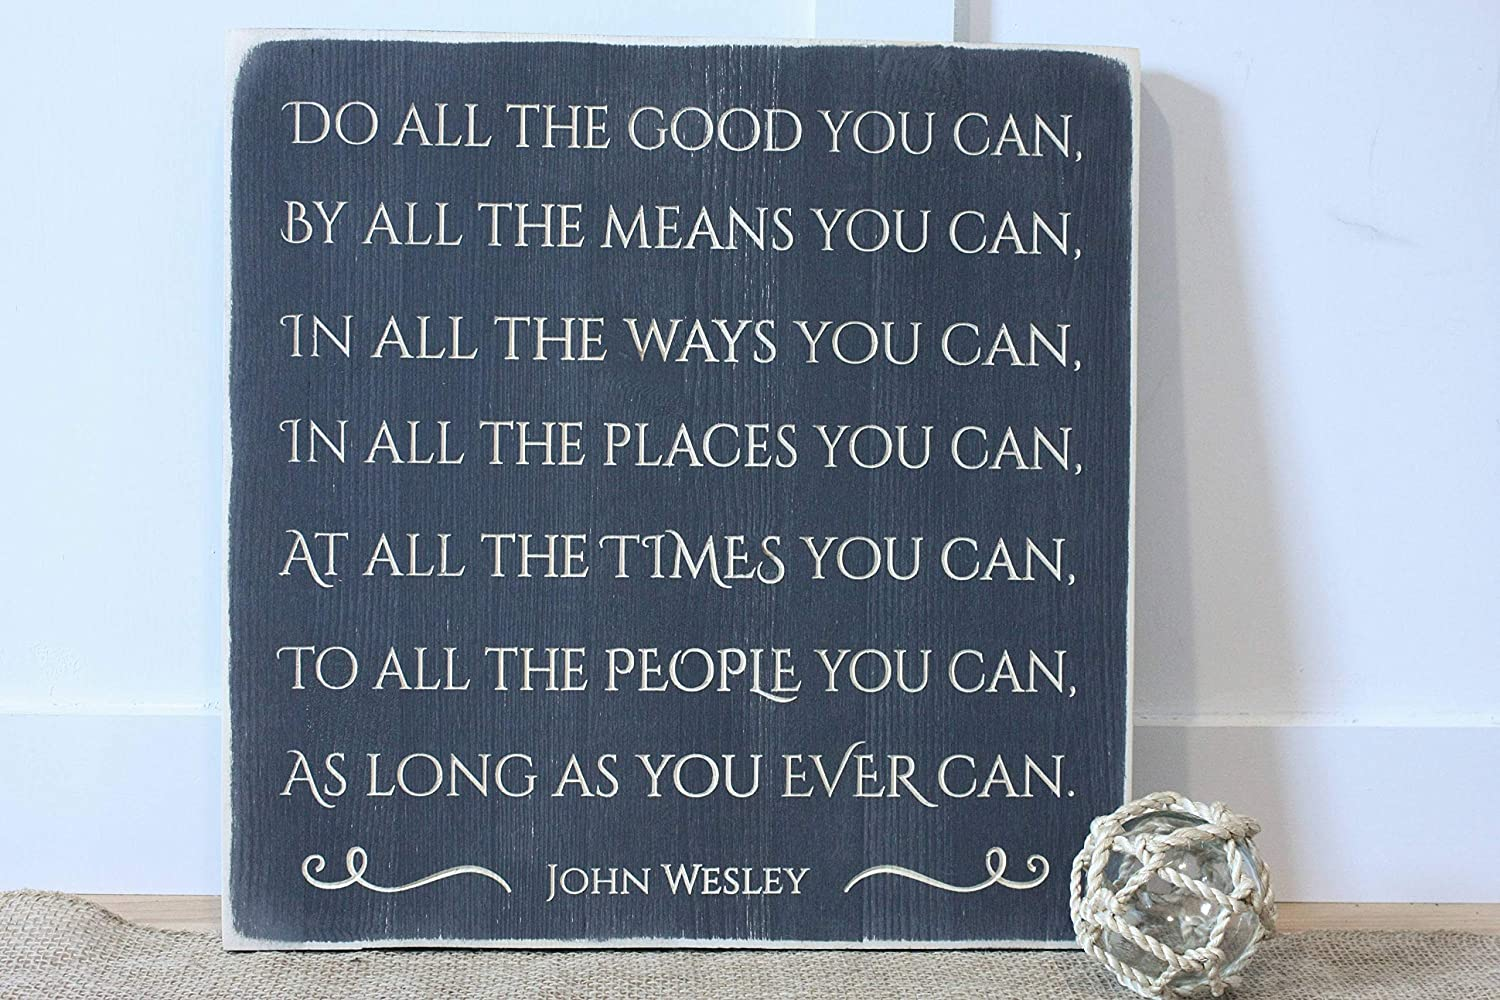 Diuangfoong Do All The Good You Can by All The Means You Can Inspirational John Wesley Quote Carved Sign - 16x16 Rustic Wooden Sign